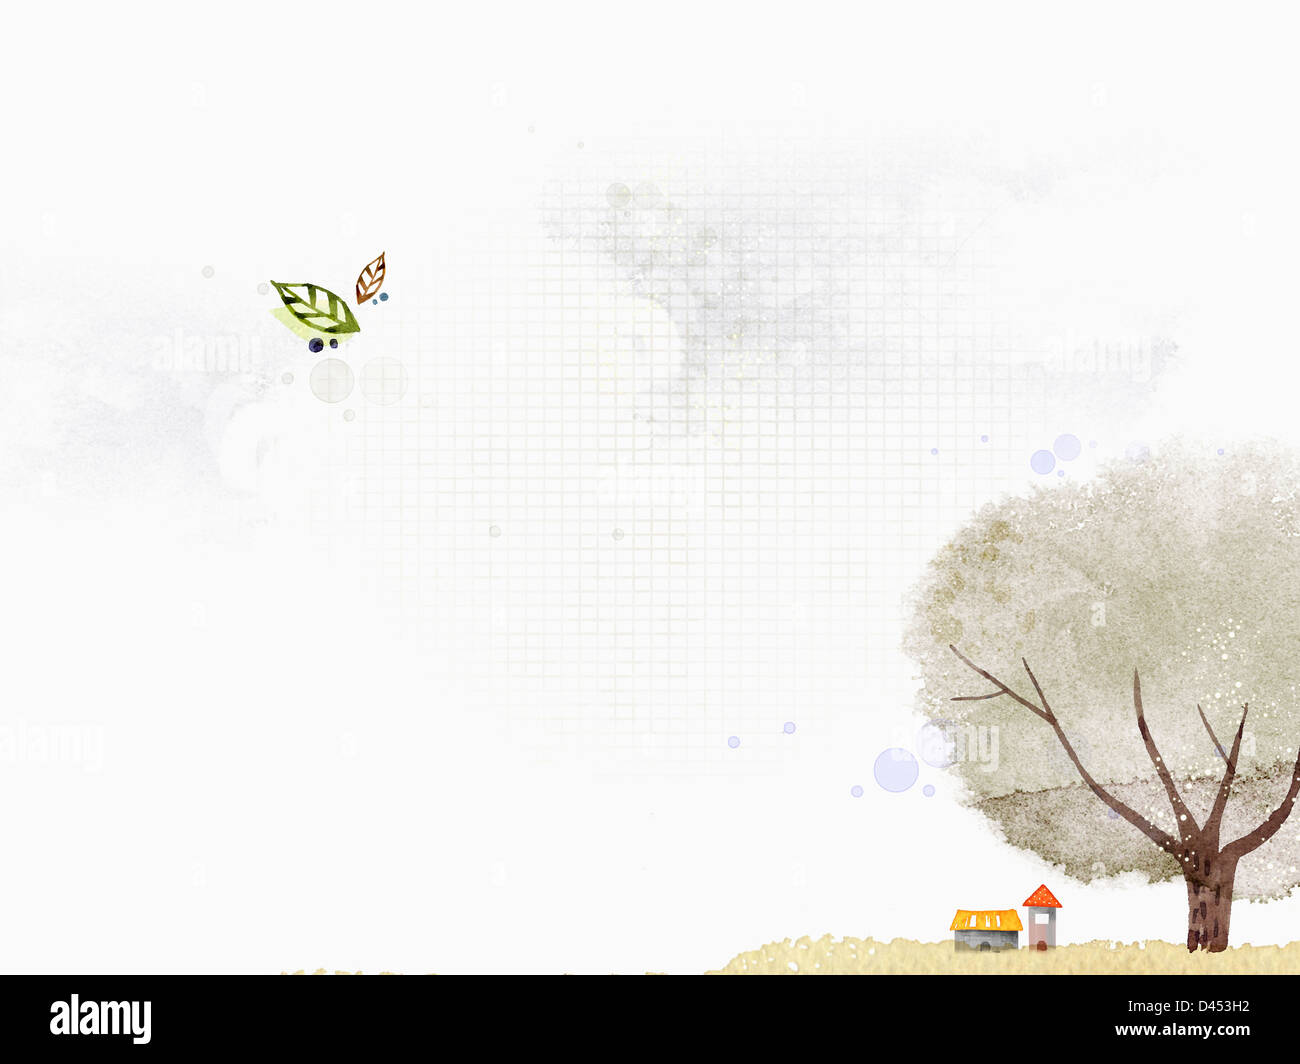 ppt background template of winter stock photo 54202318 alamy